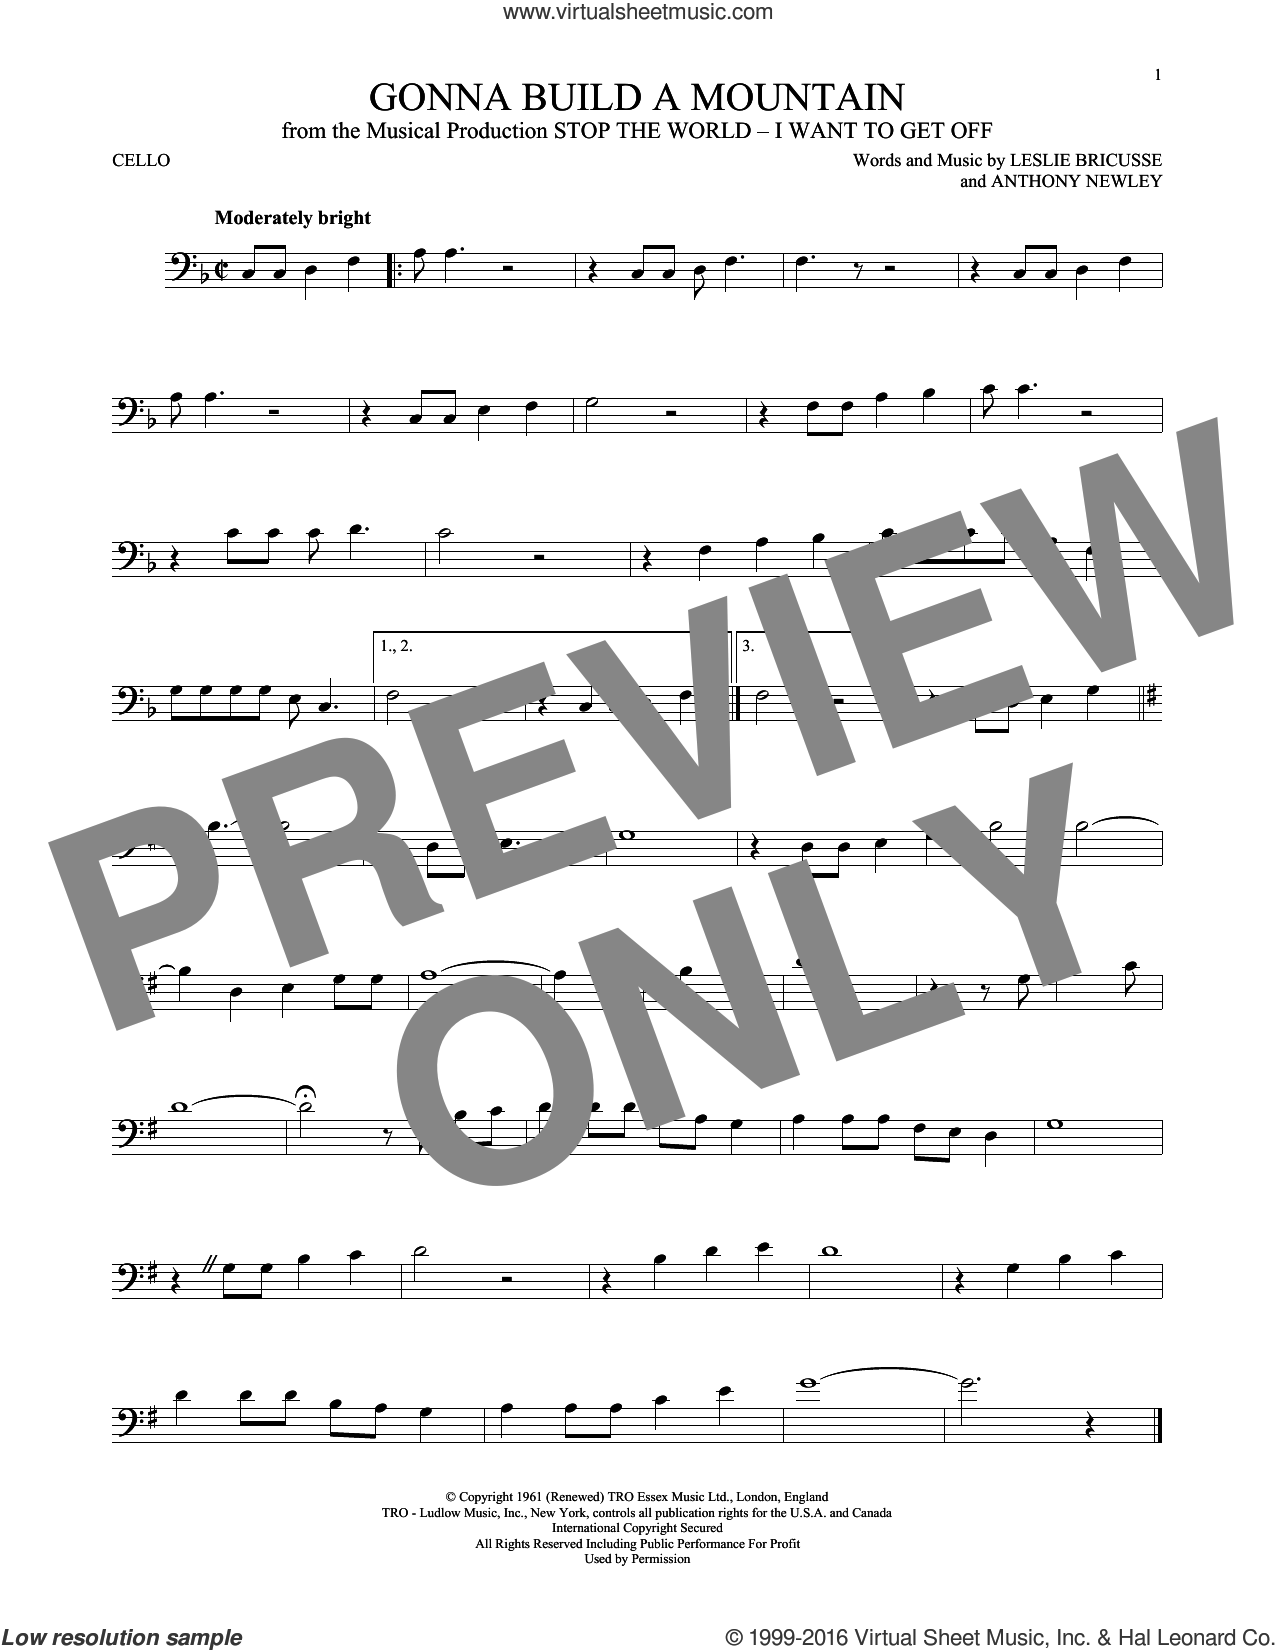 Gonna Build A Mountain sheet music for cello solo by Leslie Bricusse and Anthony Newley, intermediate. Score Image Preview.